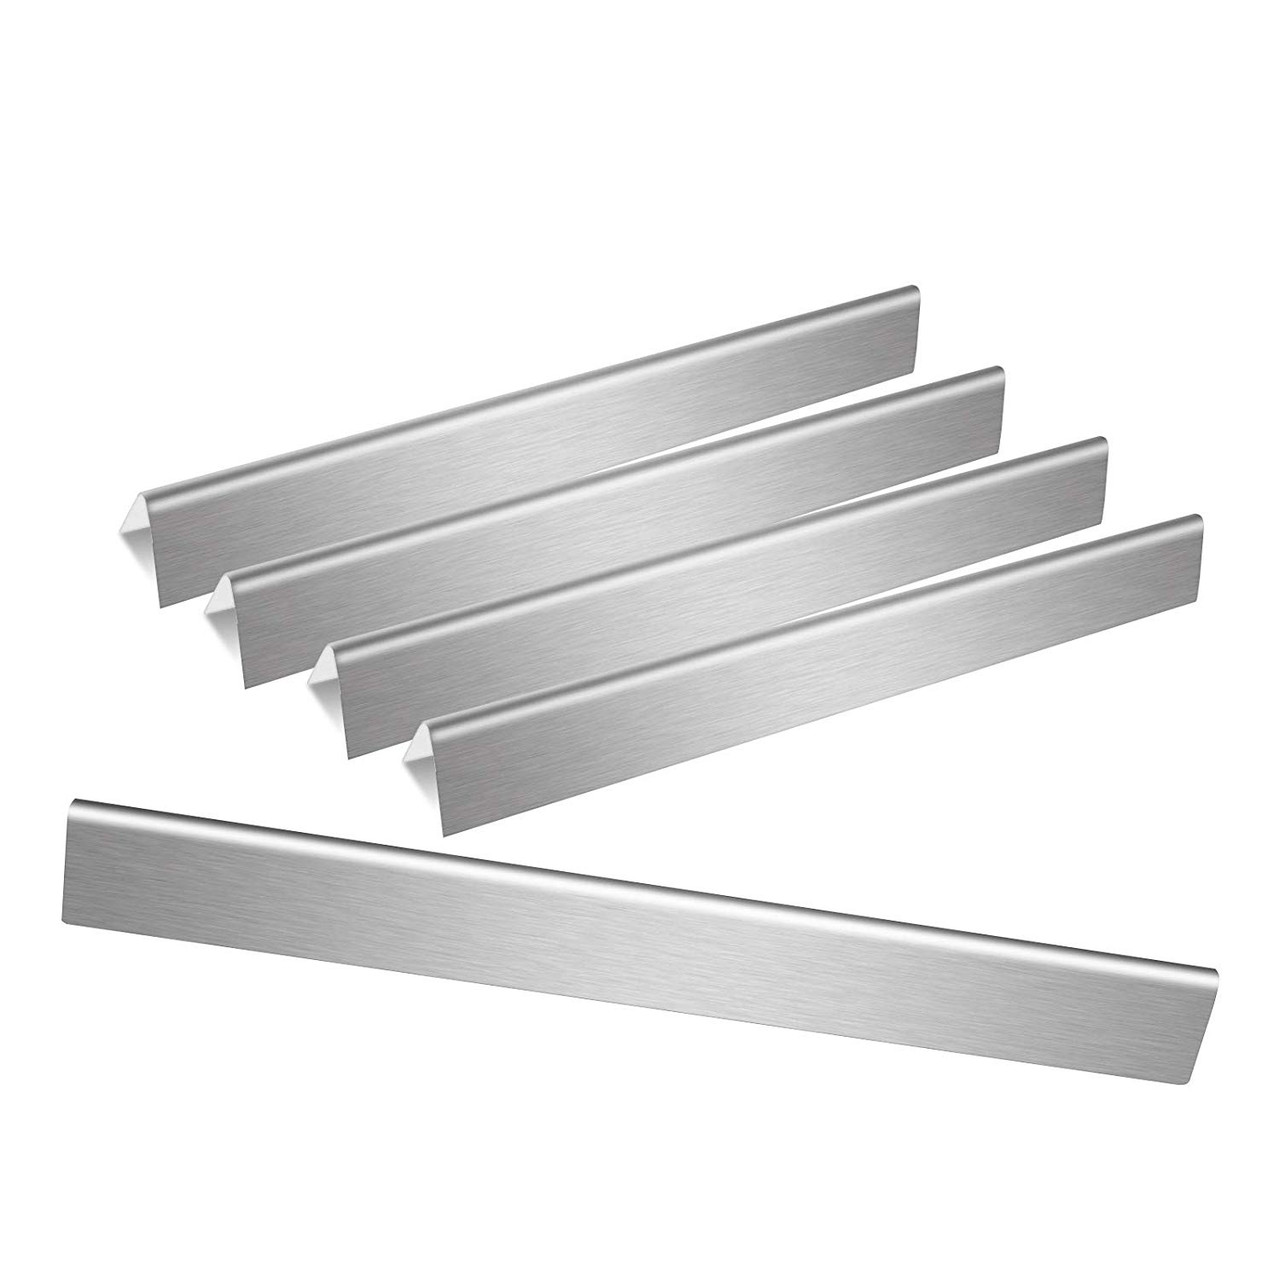 Parts Kit Replacement For Weber Genesis Silver Gold Grill Burner Heat Plate NEW